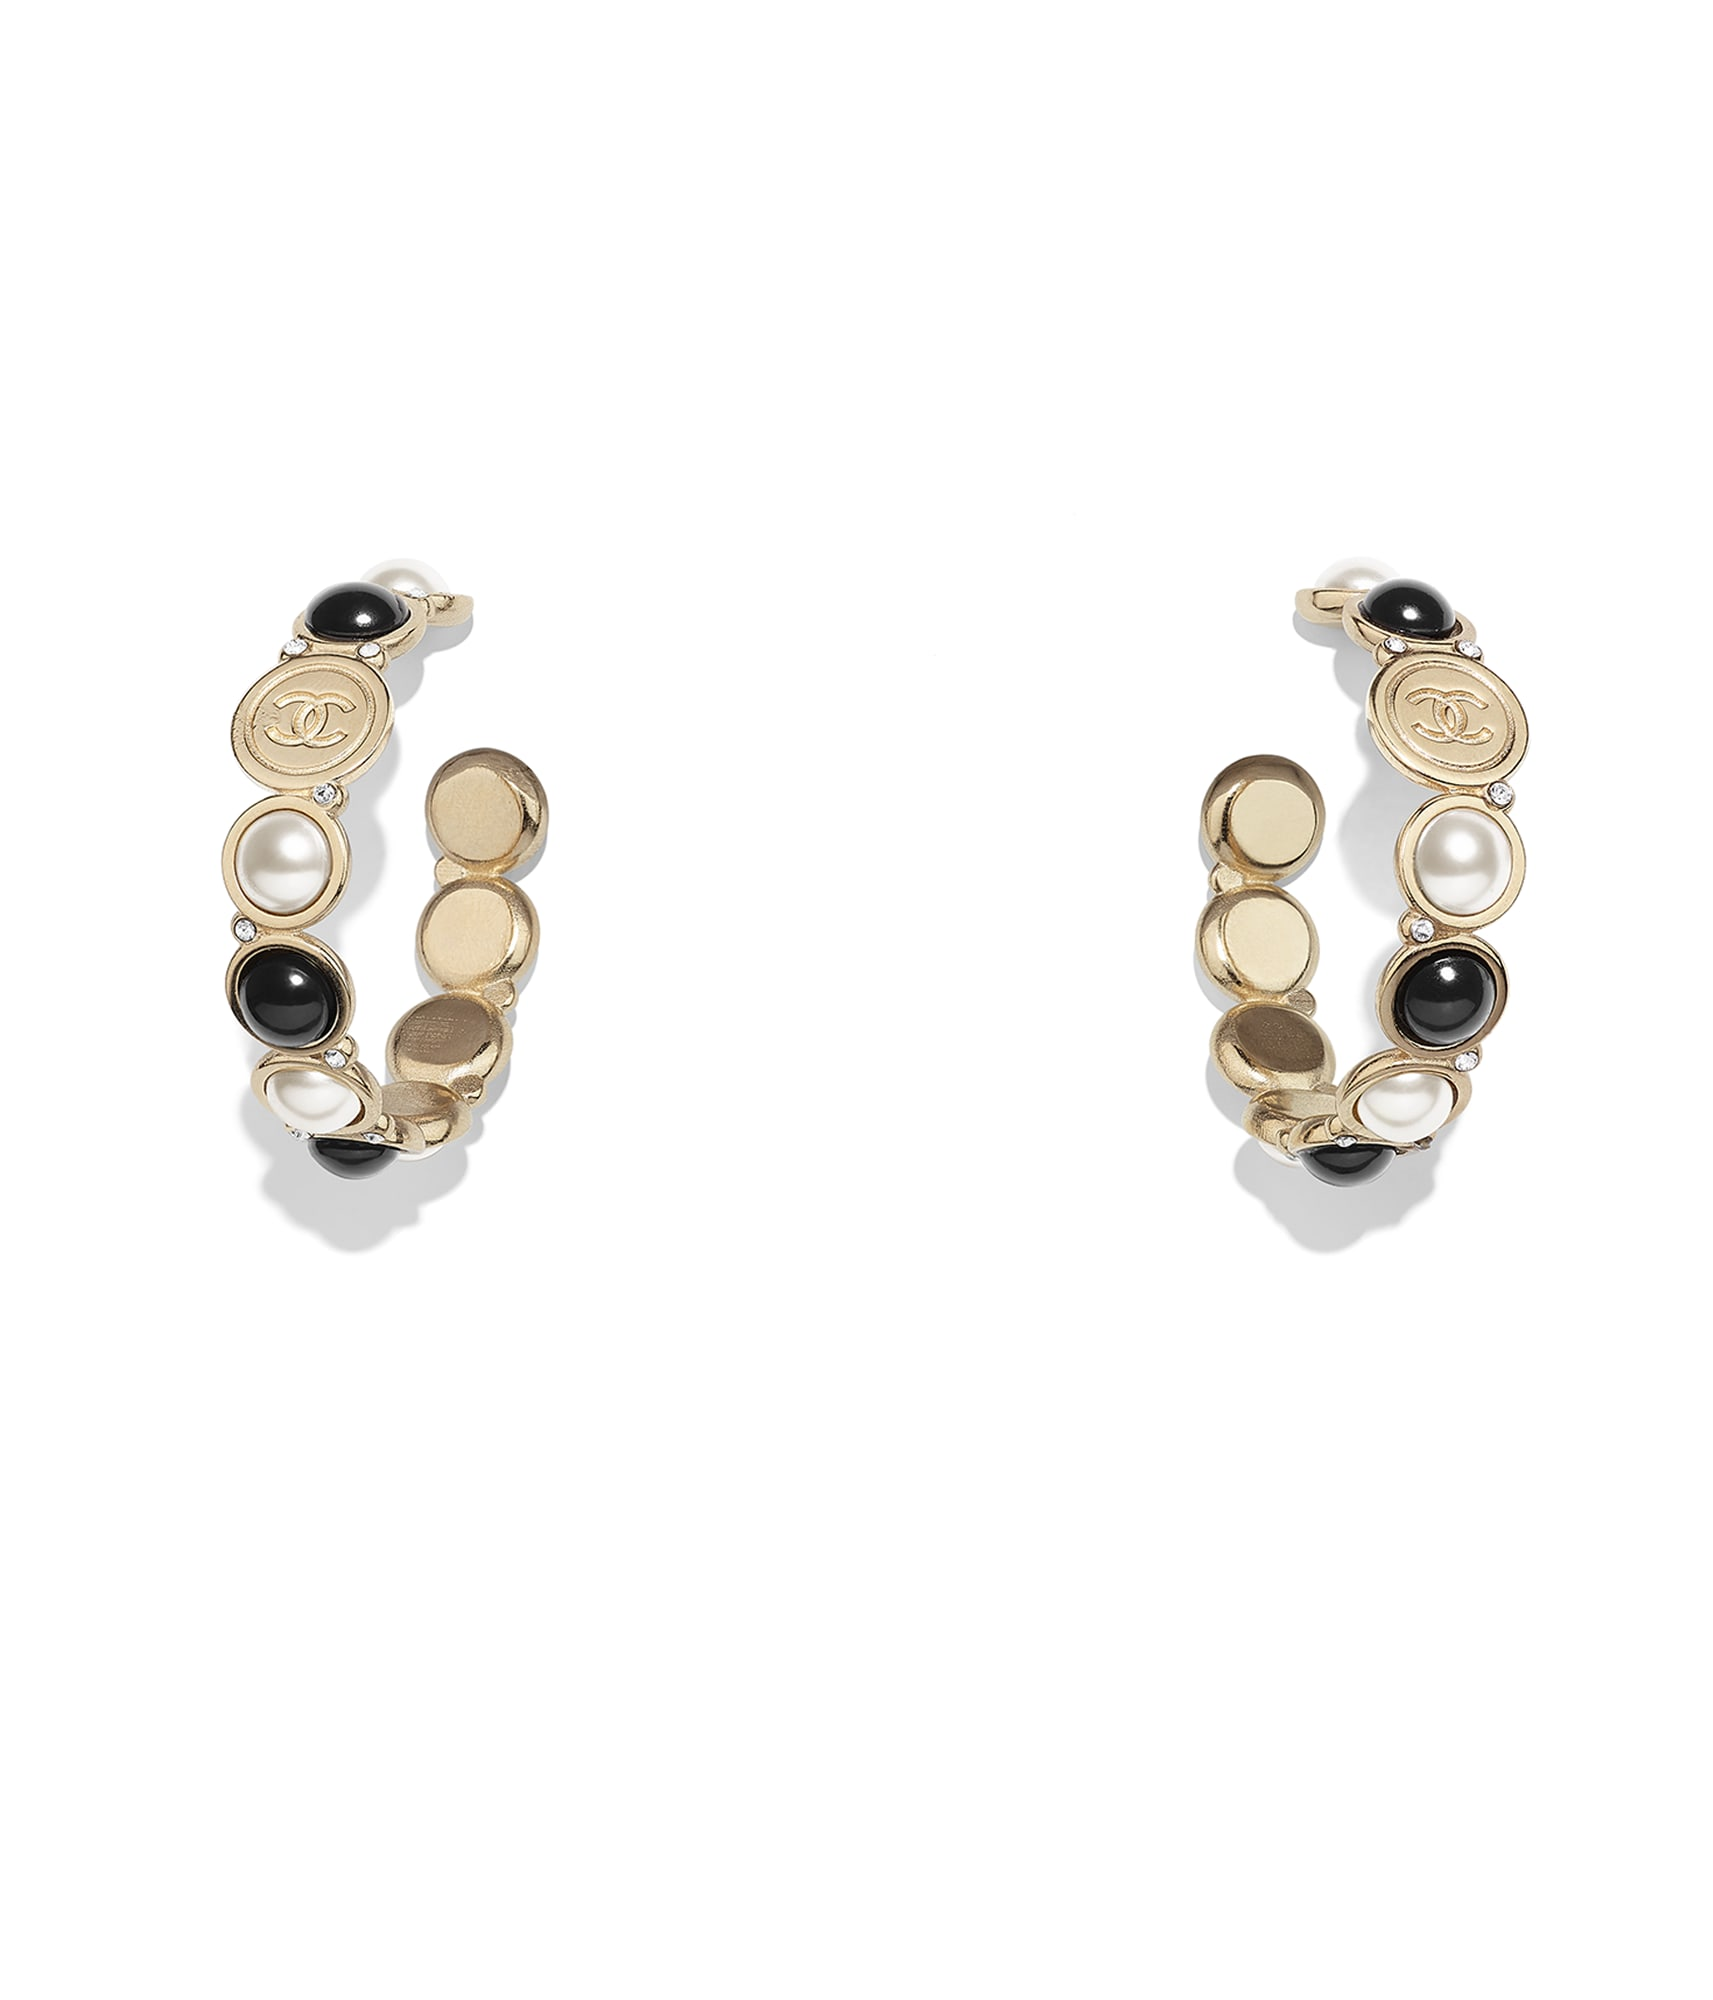 047b21e6b6f5d Earrings - Costume Jewellery - CHANEL